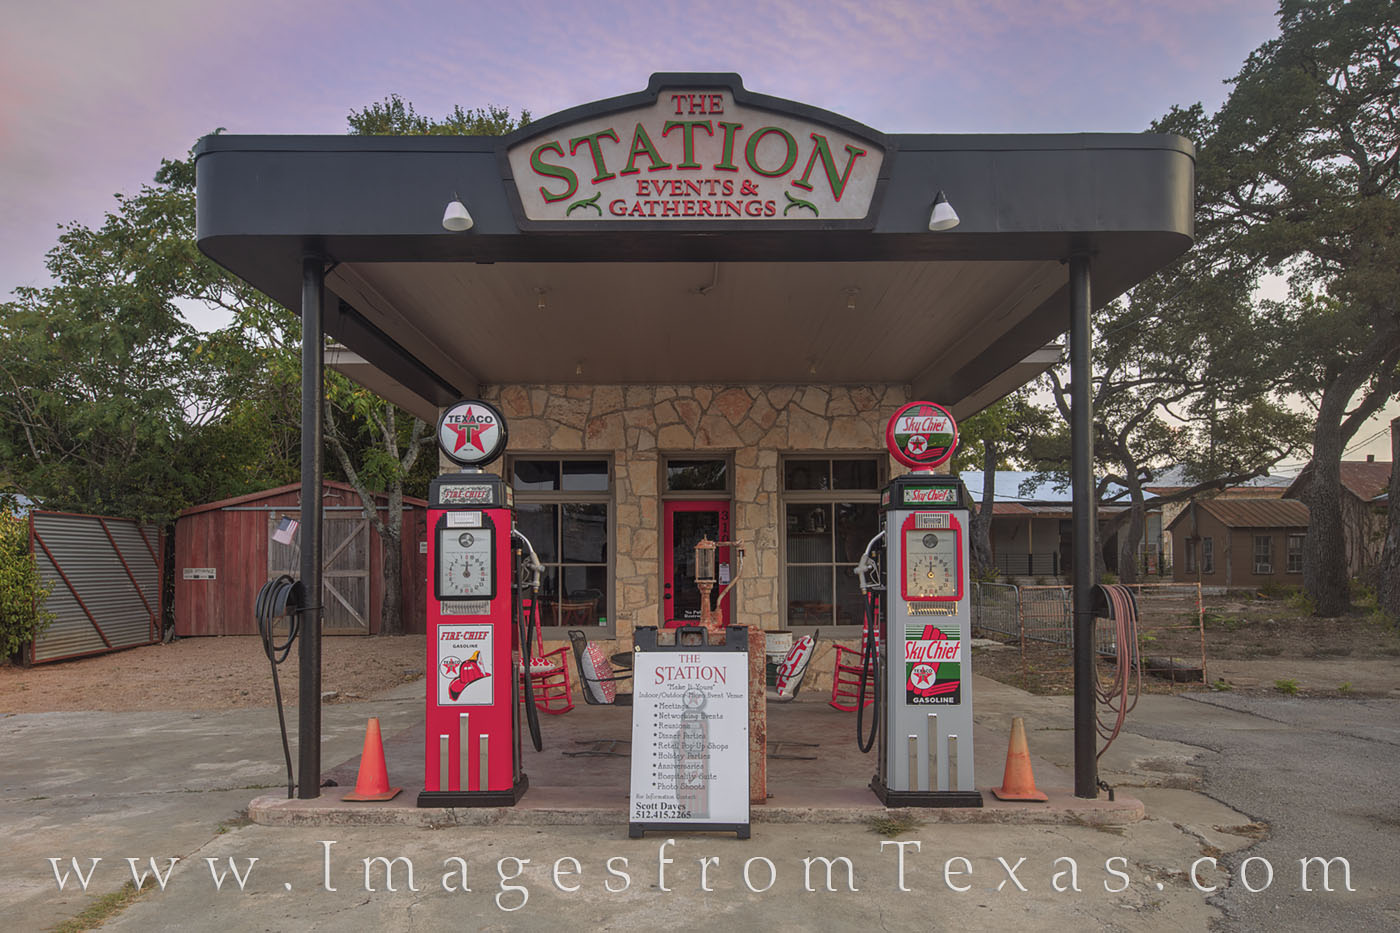 The Station, Dripping Springs, Mercer Street, Texaco, photo